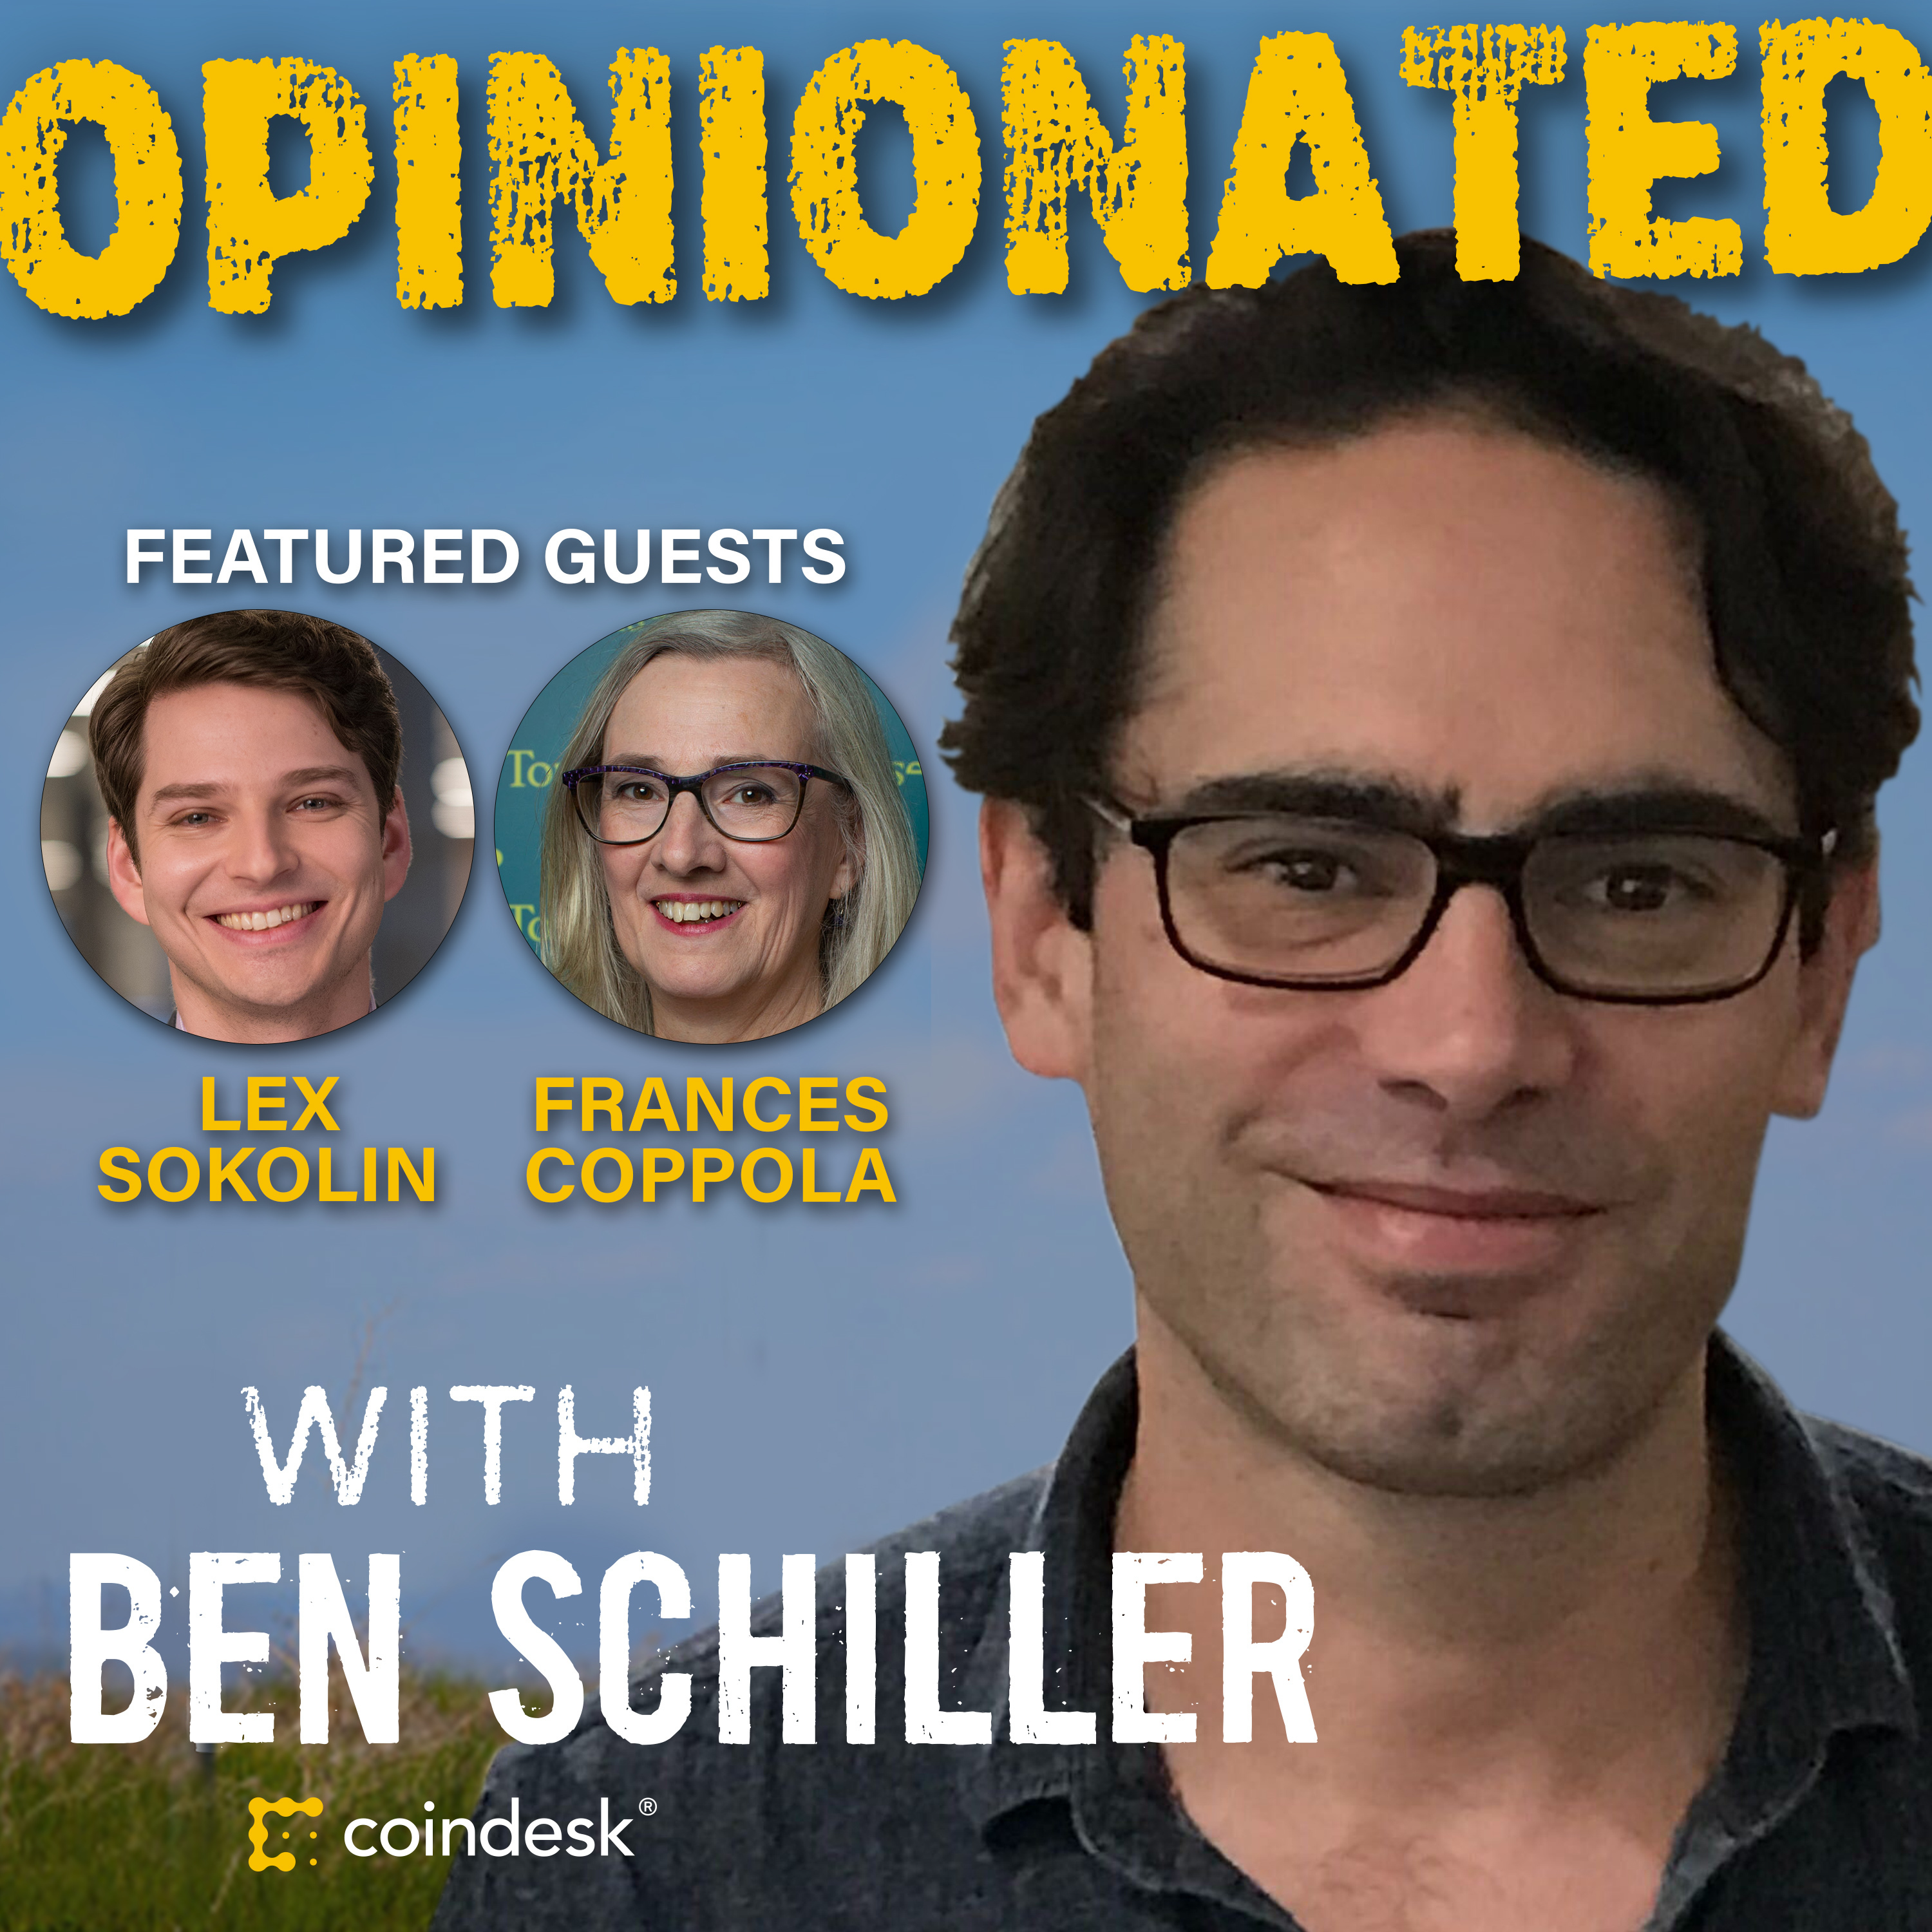 OPINIONATED: 'It's This Really Precious Thing.' Lex Sokolin on DeFi's Next Chapter, and Frances Coppola on the End of Banks